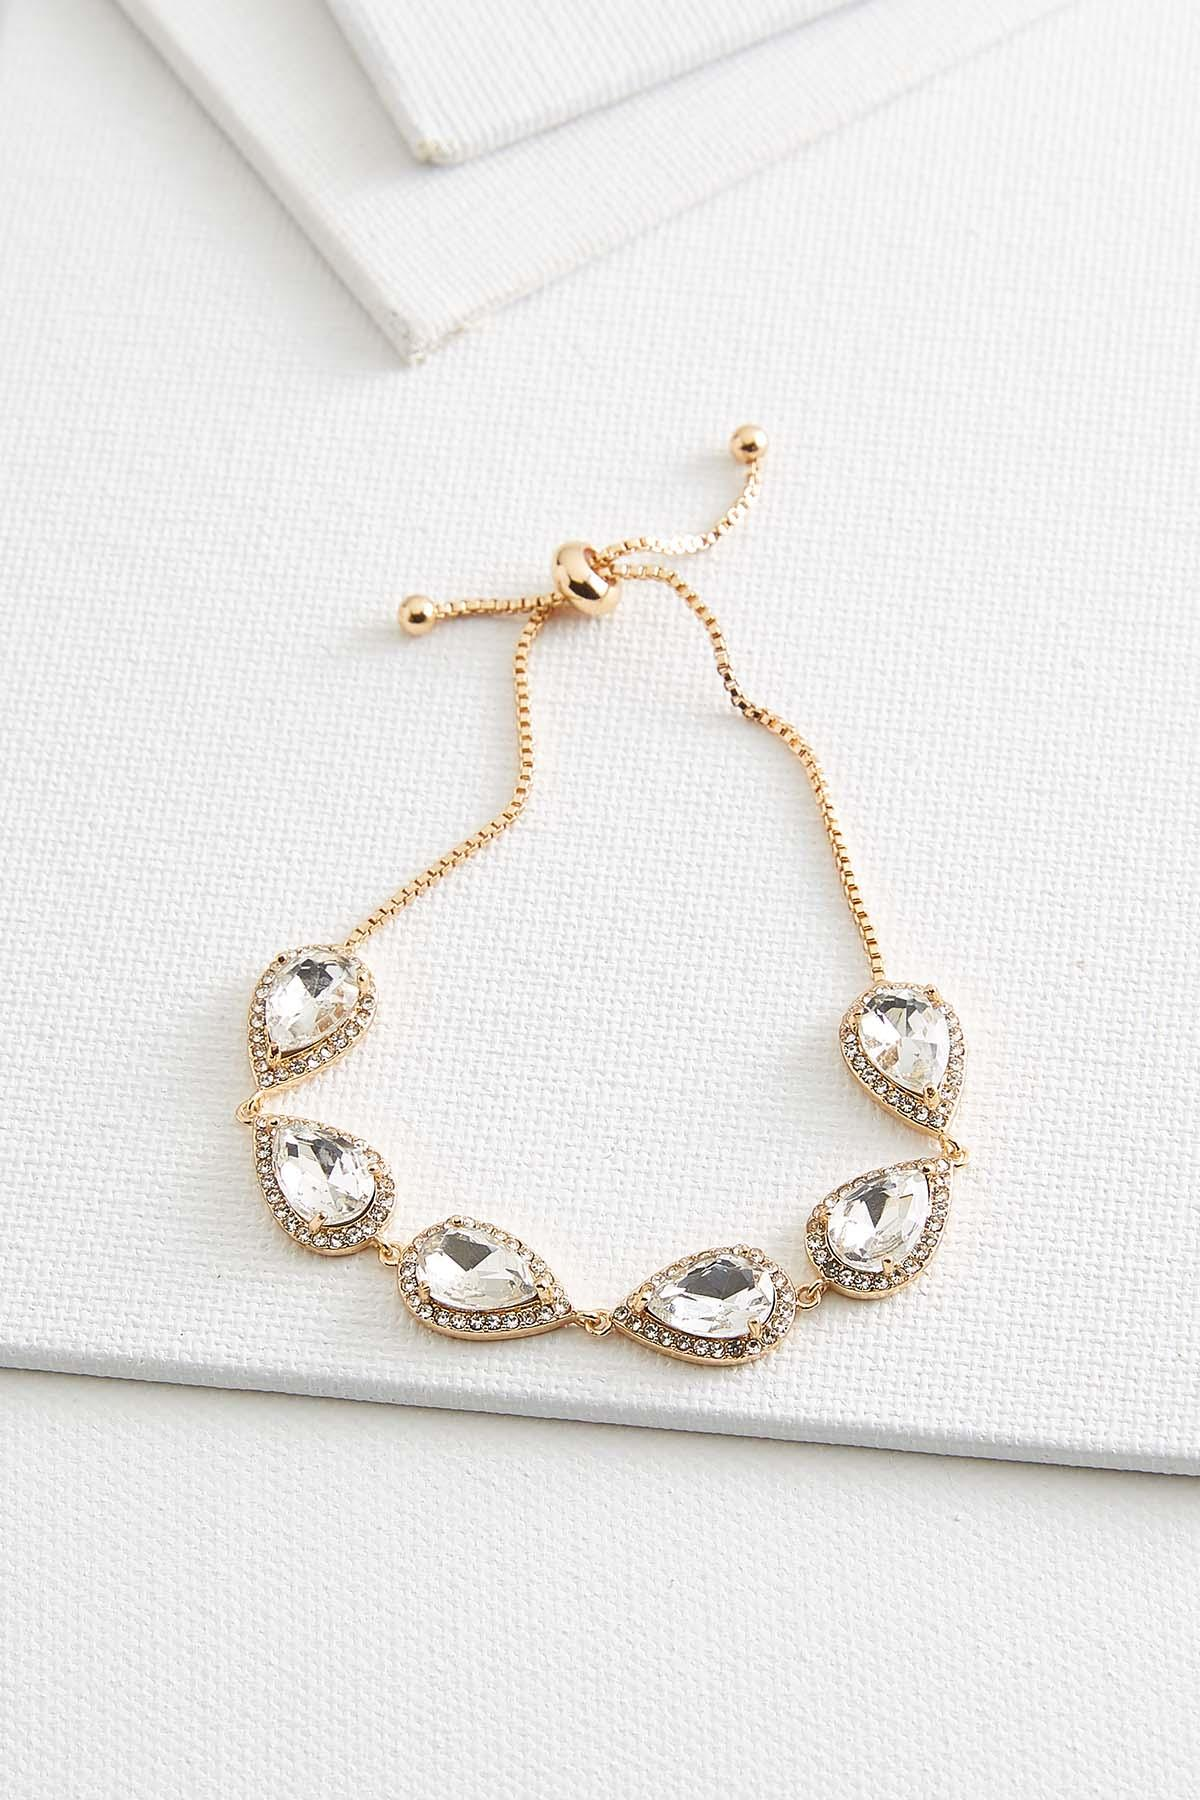 Shimmery Tear Shaped Bracelet